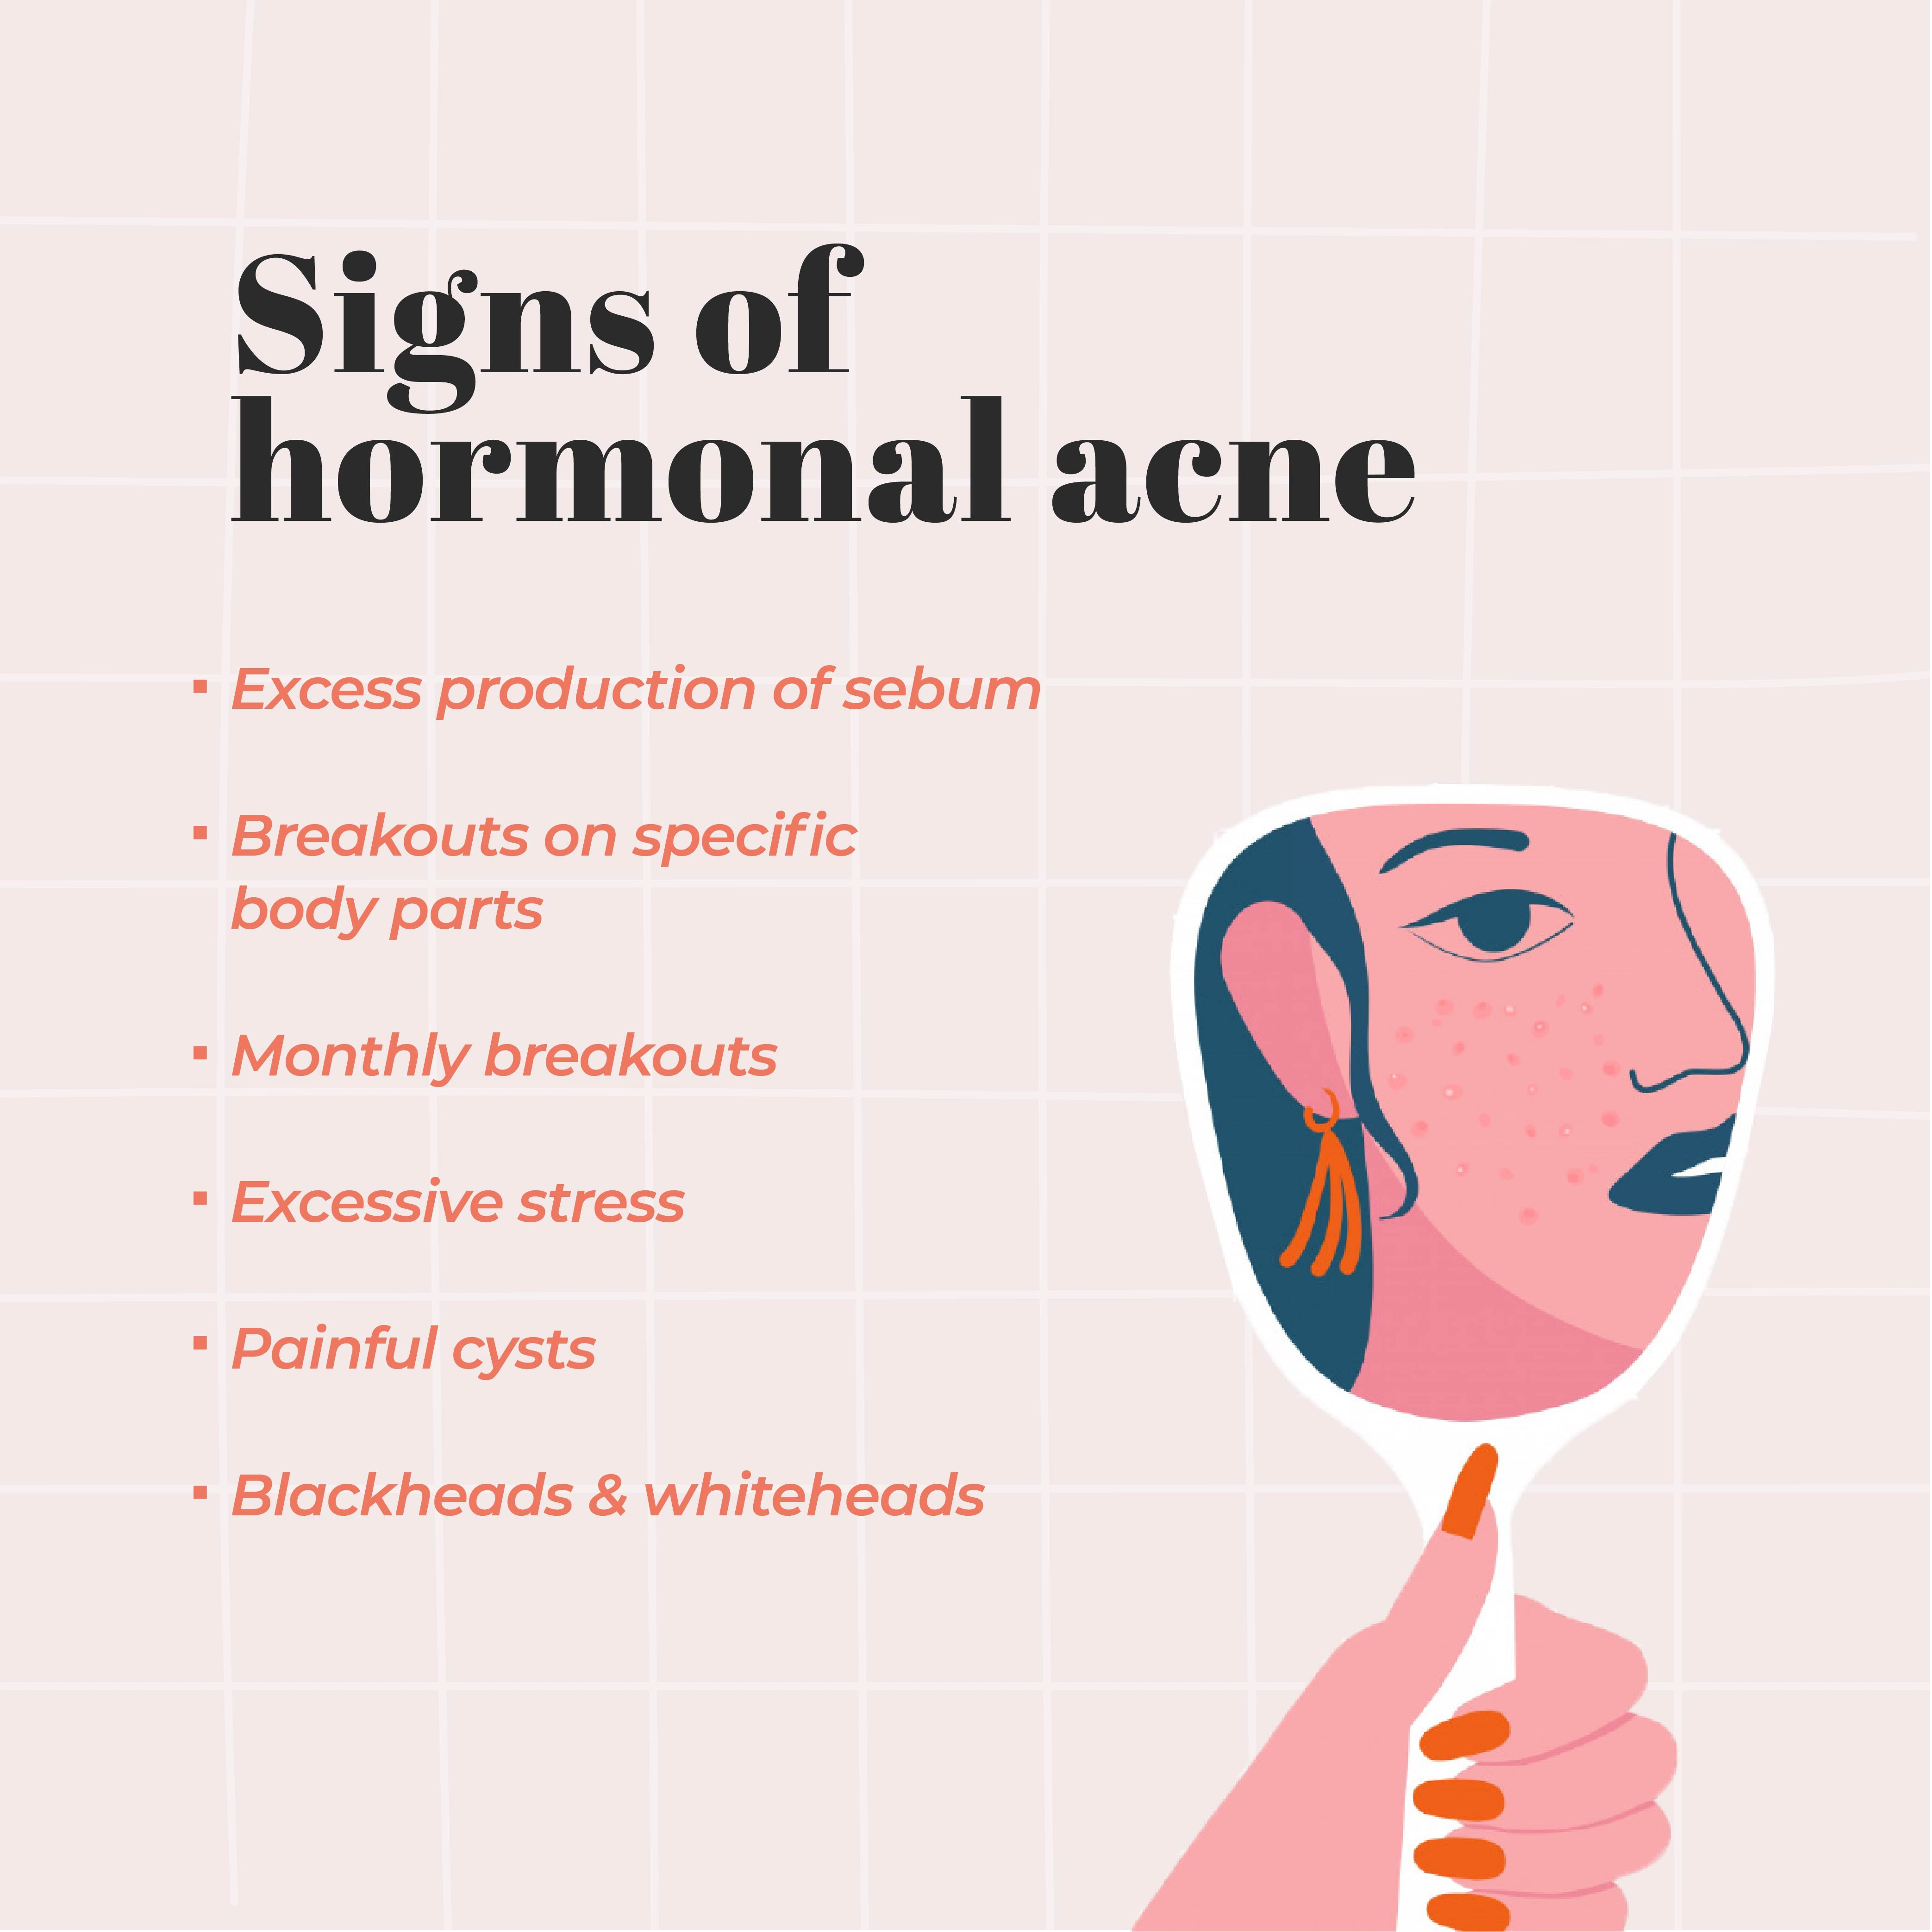 This is an image of the signs of hormonal acne